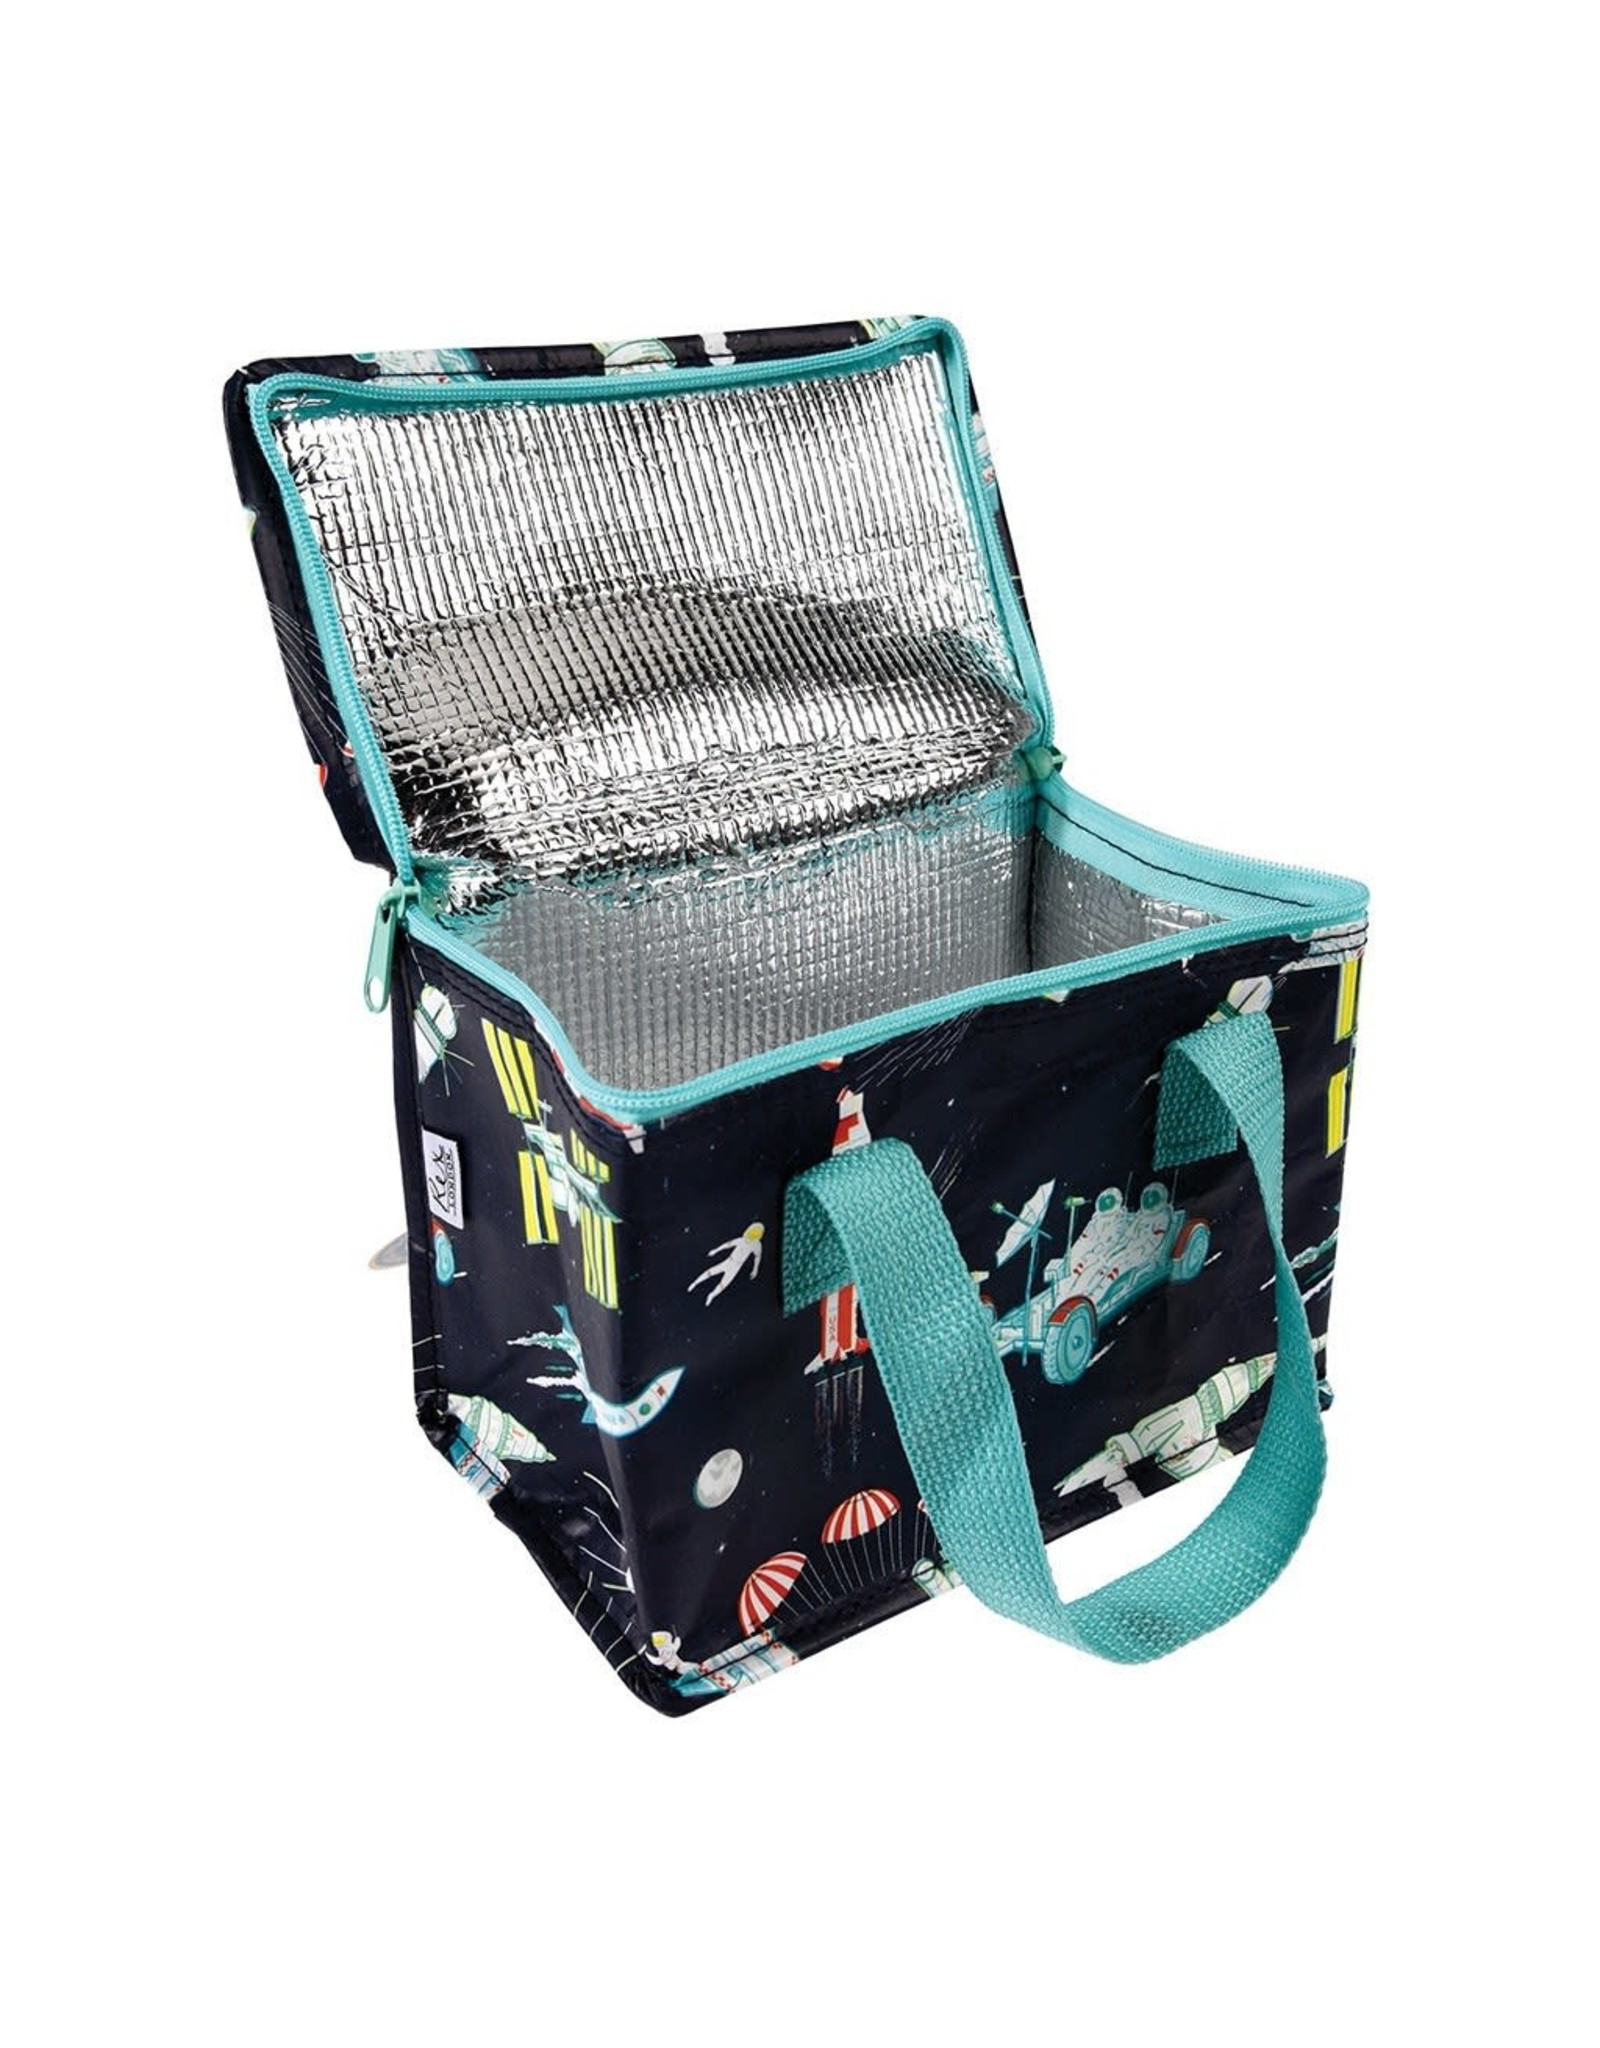 REX London Lunch Bag, Space Age